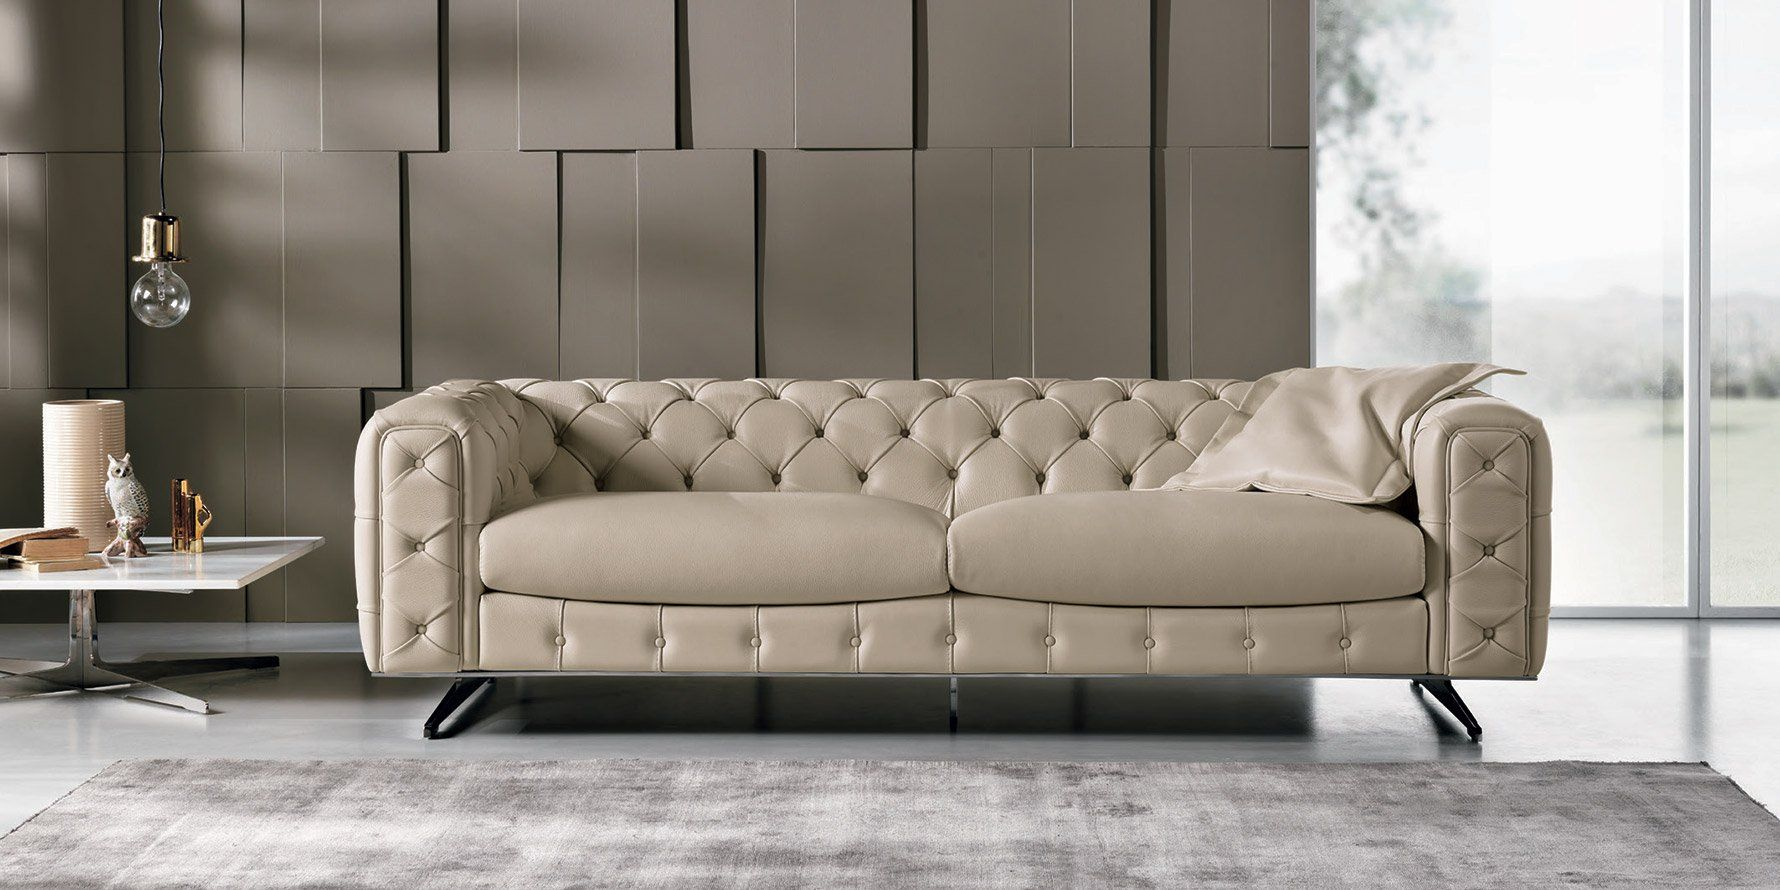 Ingrid Sofa Living Room Italian Furniture Los Angeles Furniture Italian Luxury Sofa Leather Corner Sofa